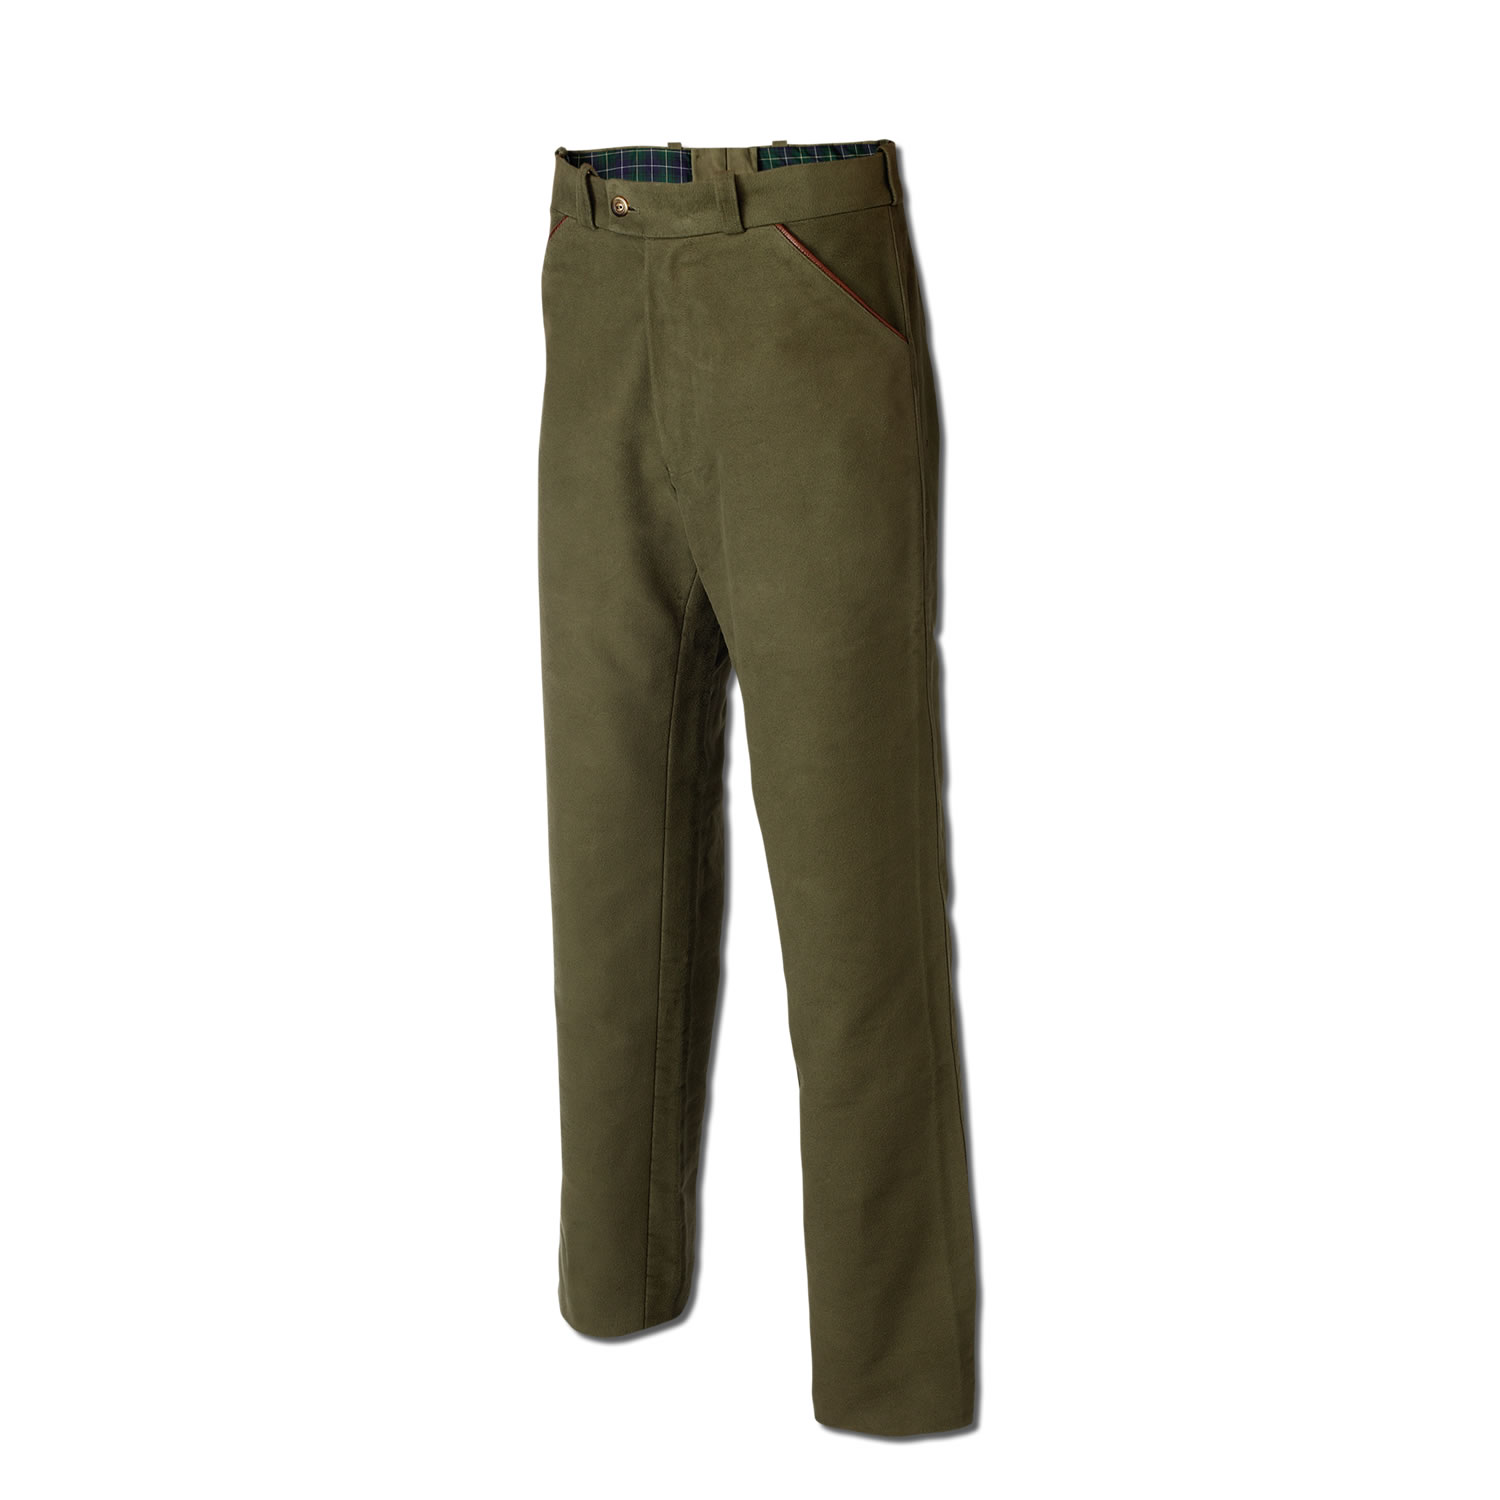 """Men's Trousers and Shorts in a Range of Sizes. All of our cargo shorts for men and chino shorts come in a range of sizes, from XS to 5XL, while our trouser leg lengths range from 27"""" to 33"""", so you're sure to find the best fit for you."""